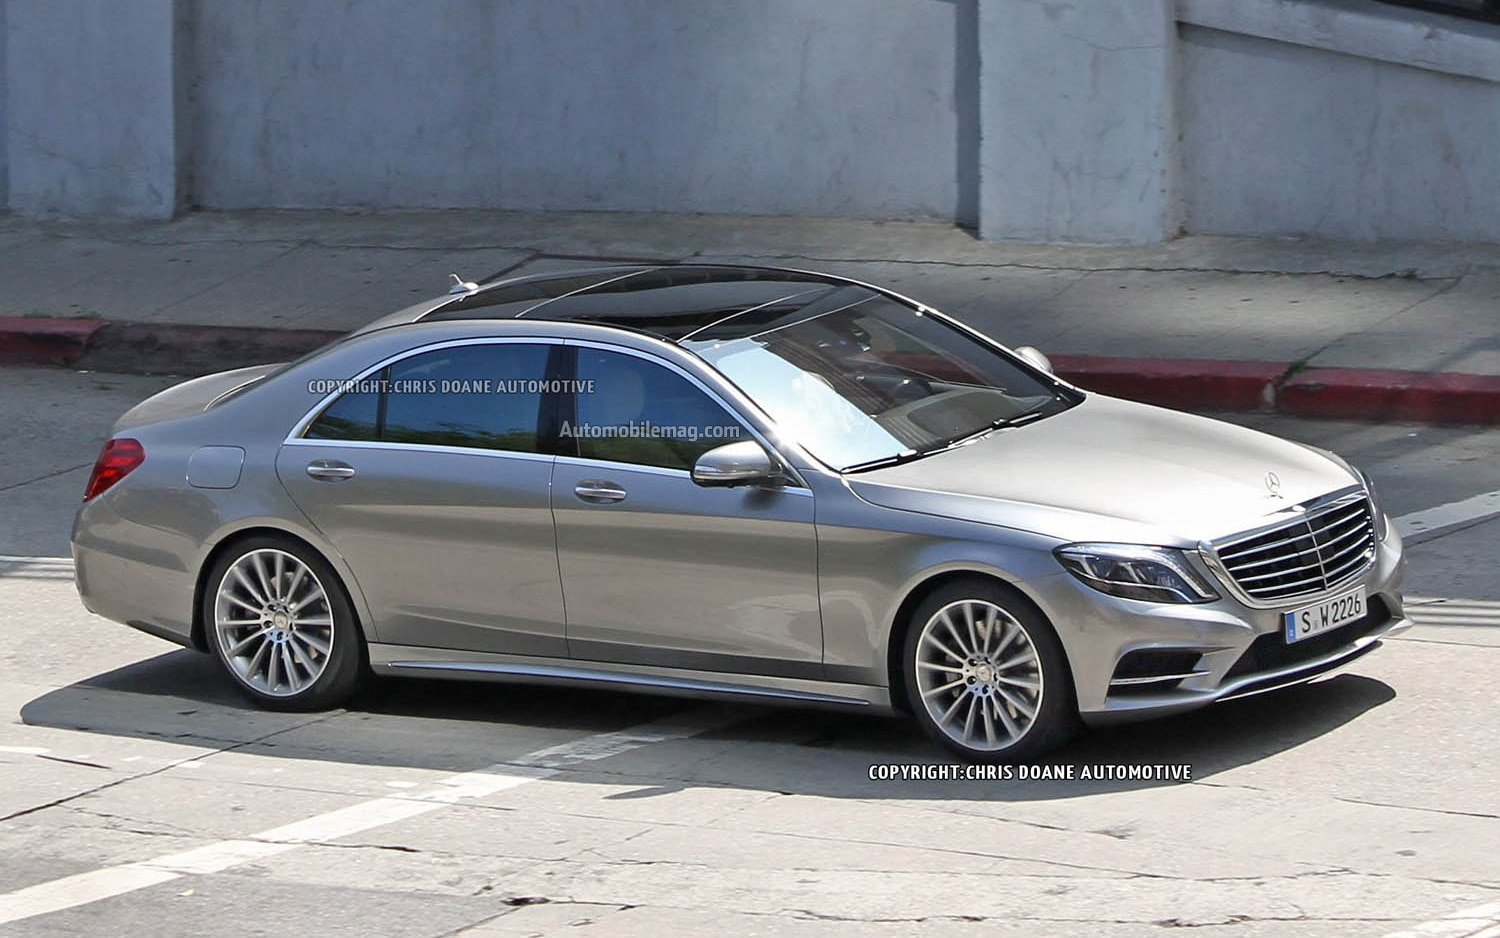 2014 mercedes benz s class spied front three quarter 21 - Mercedes Benz 2014 S Class Interior